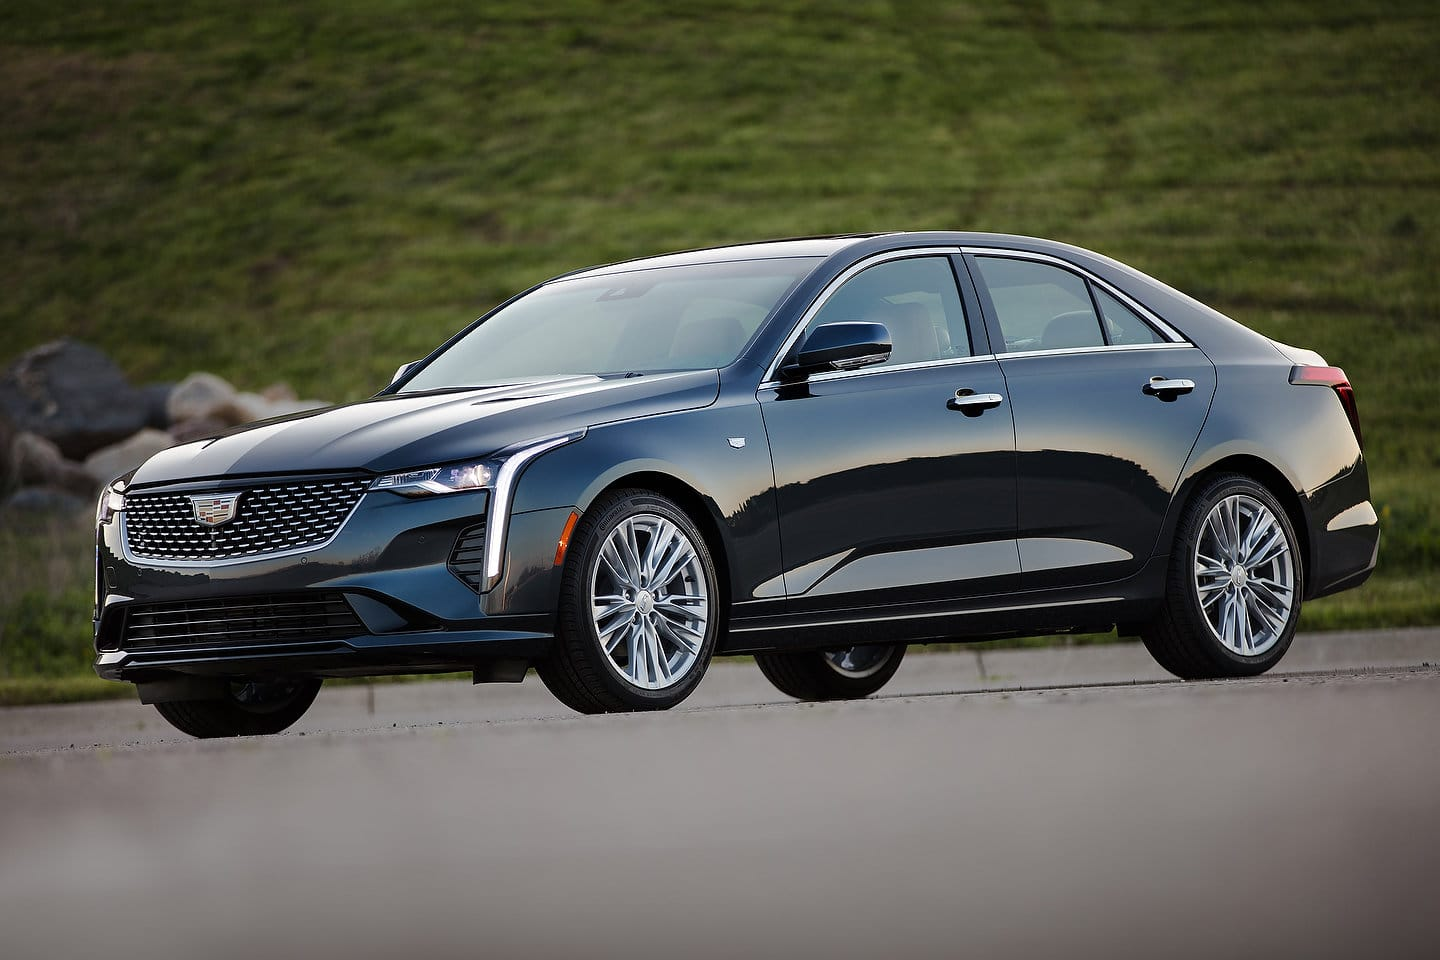 new 2020 cadillac ct4 priced to take on the germans